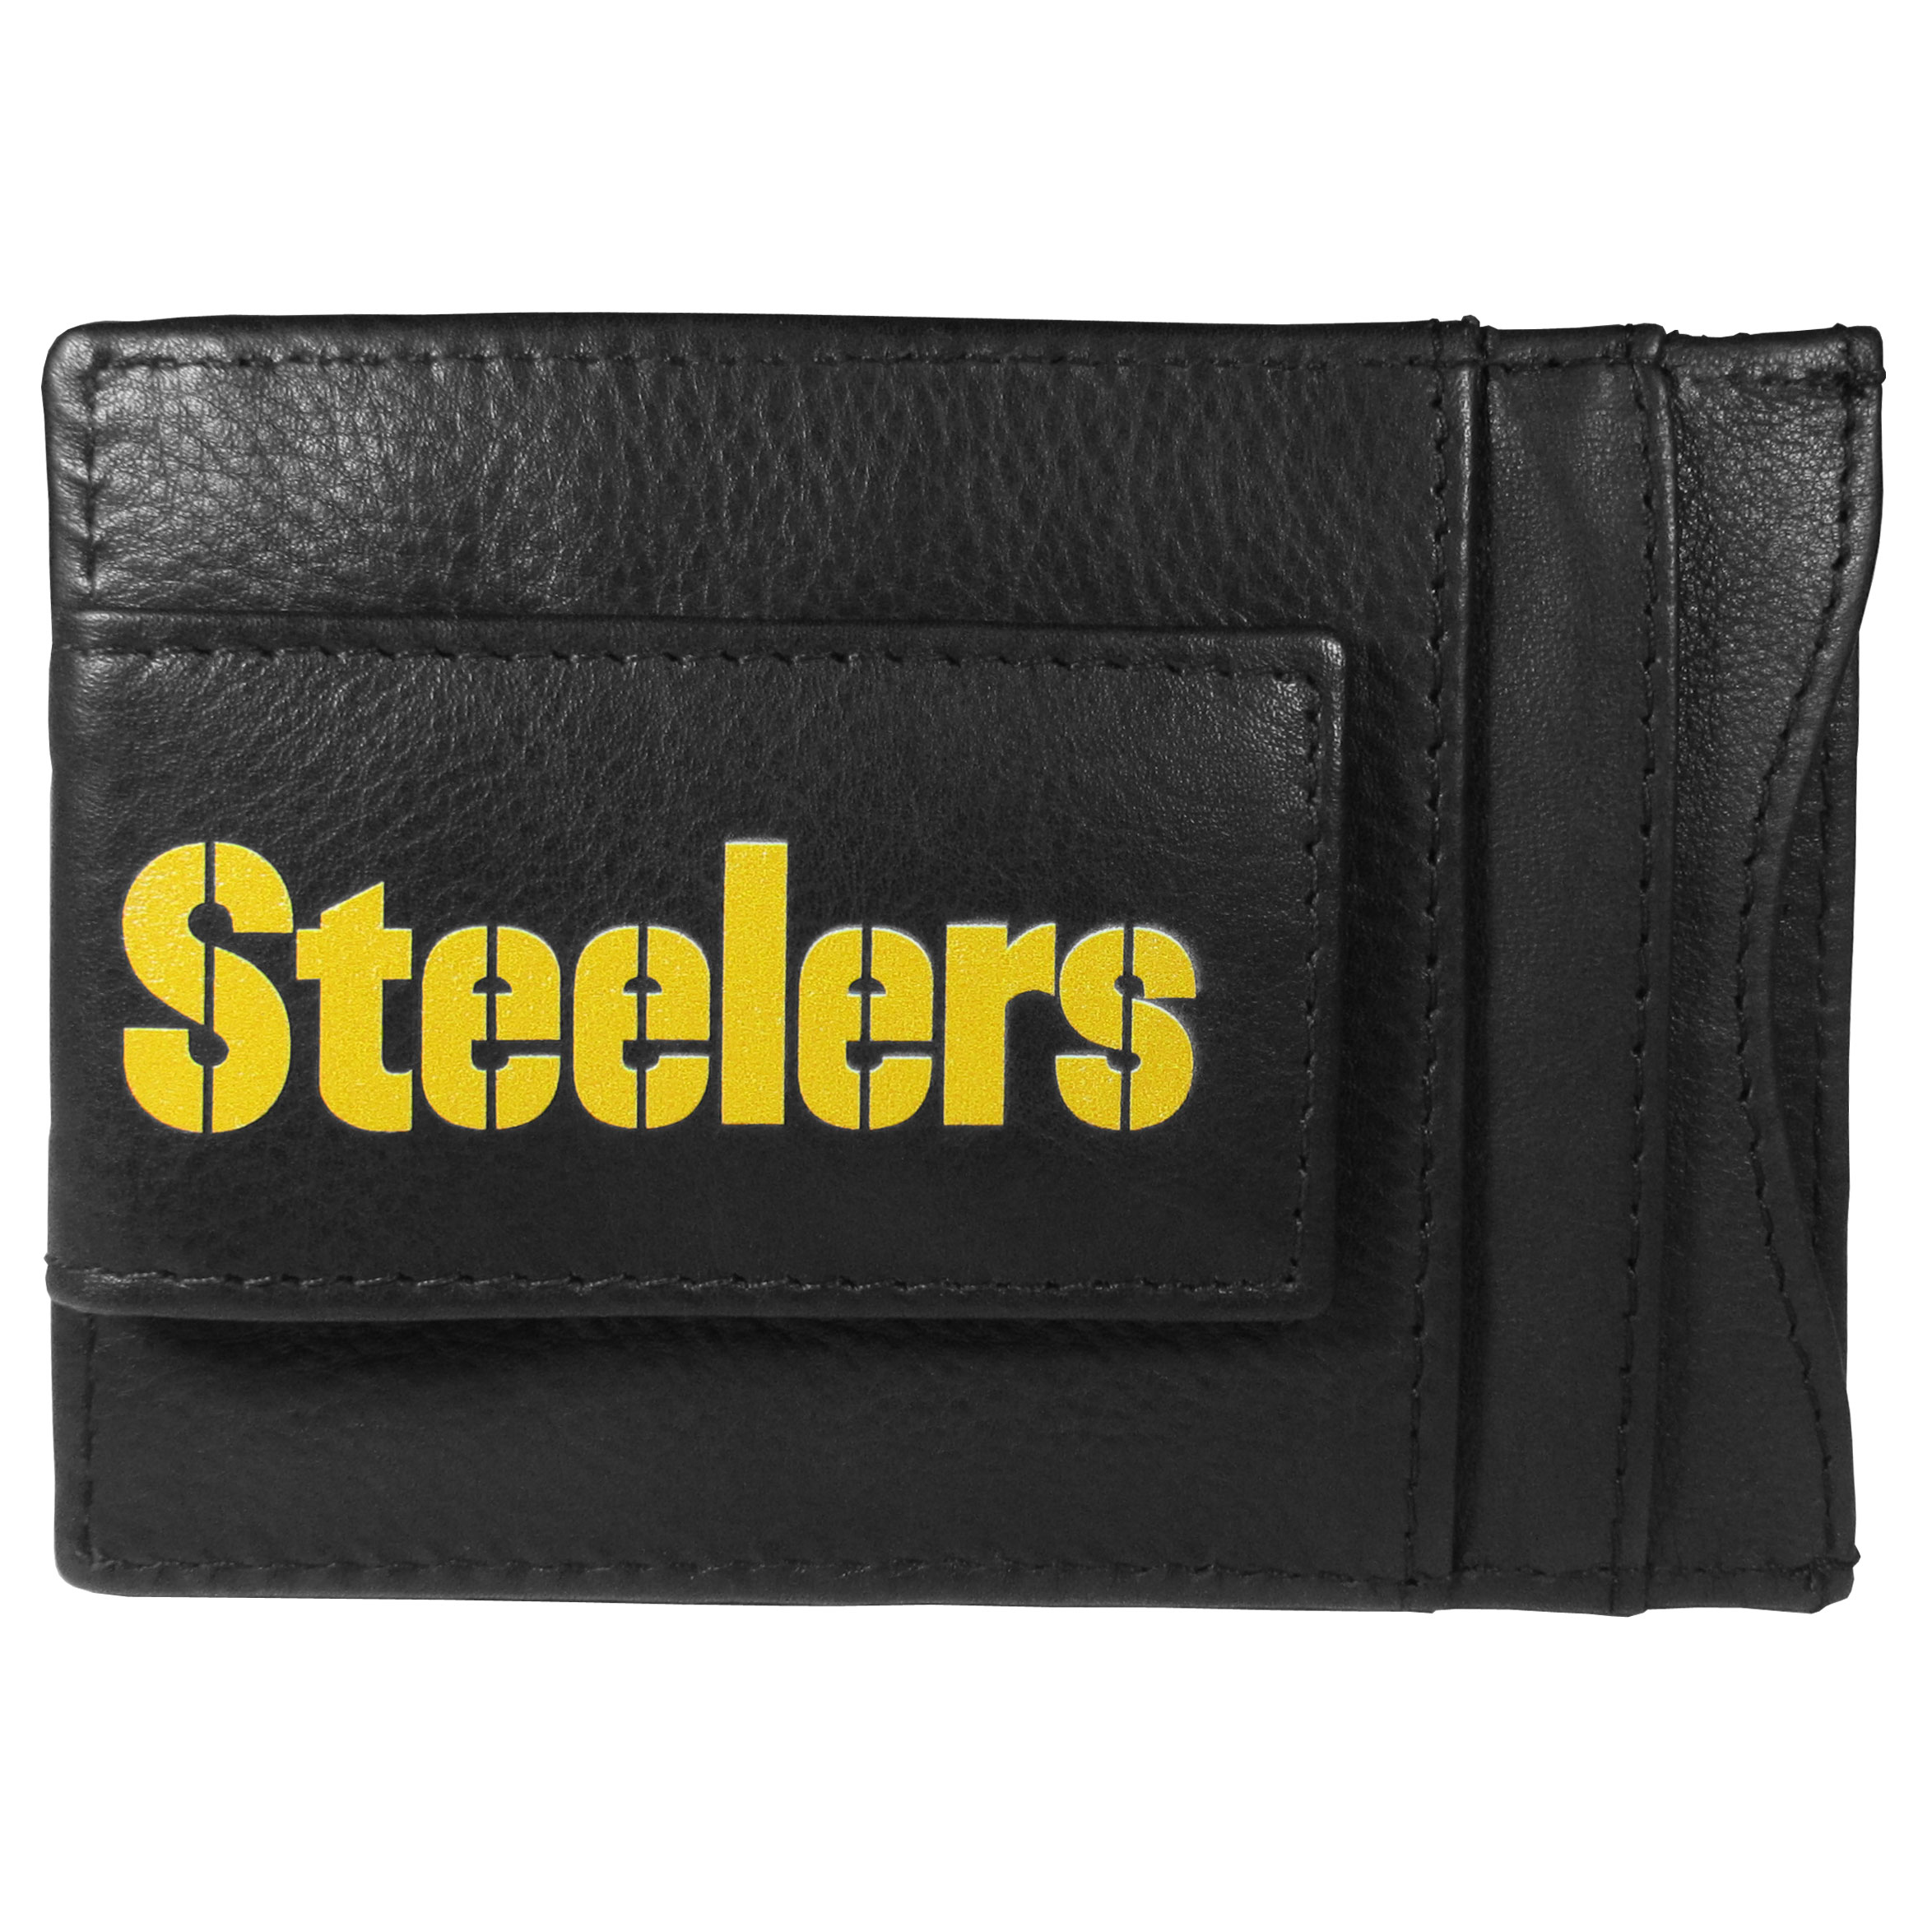 Pittsburgh Steelers Logo Leather Cash and Cardholder - This super slim leather wallet lets you have all the benefits of a money clip while keeping the organization of a wallet. On one side of this front pocket wallet there is a strong, magnetic money clip to keep your cash easily accessible and the?Pittsburgh Steelers team logo on the front. The versatile men's accessory is a perfect addition to your fan apparel.